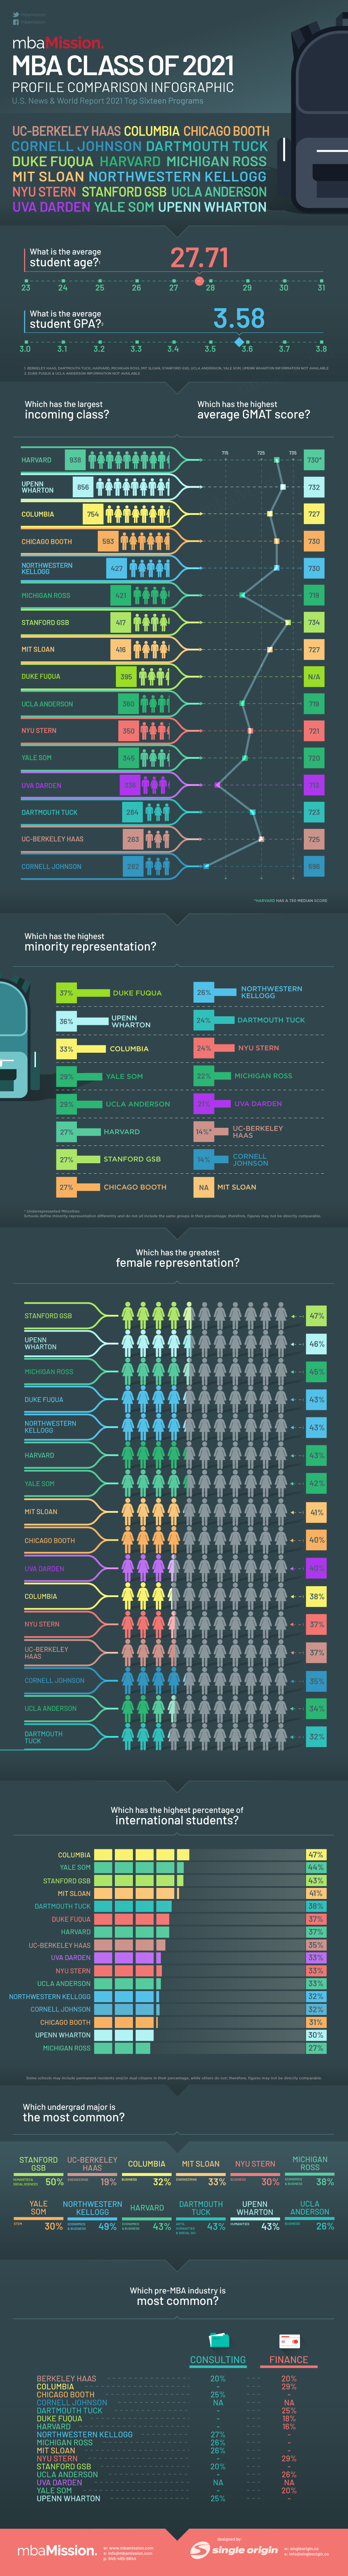 mbaMission's 2021 MBA Class Profile Infographic